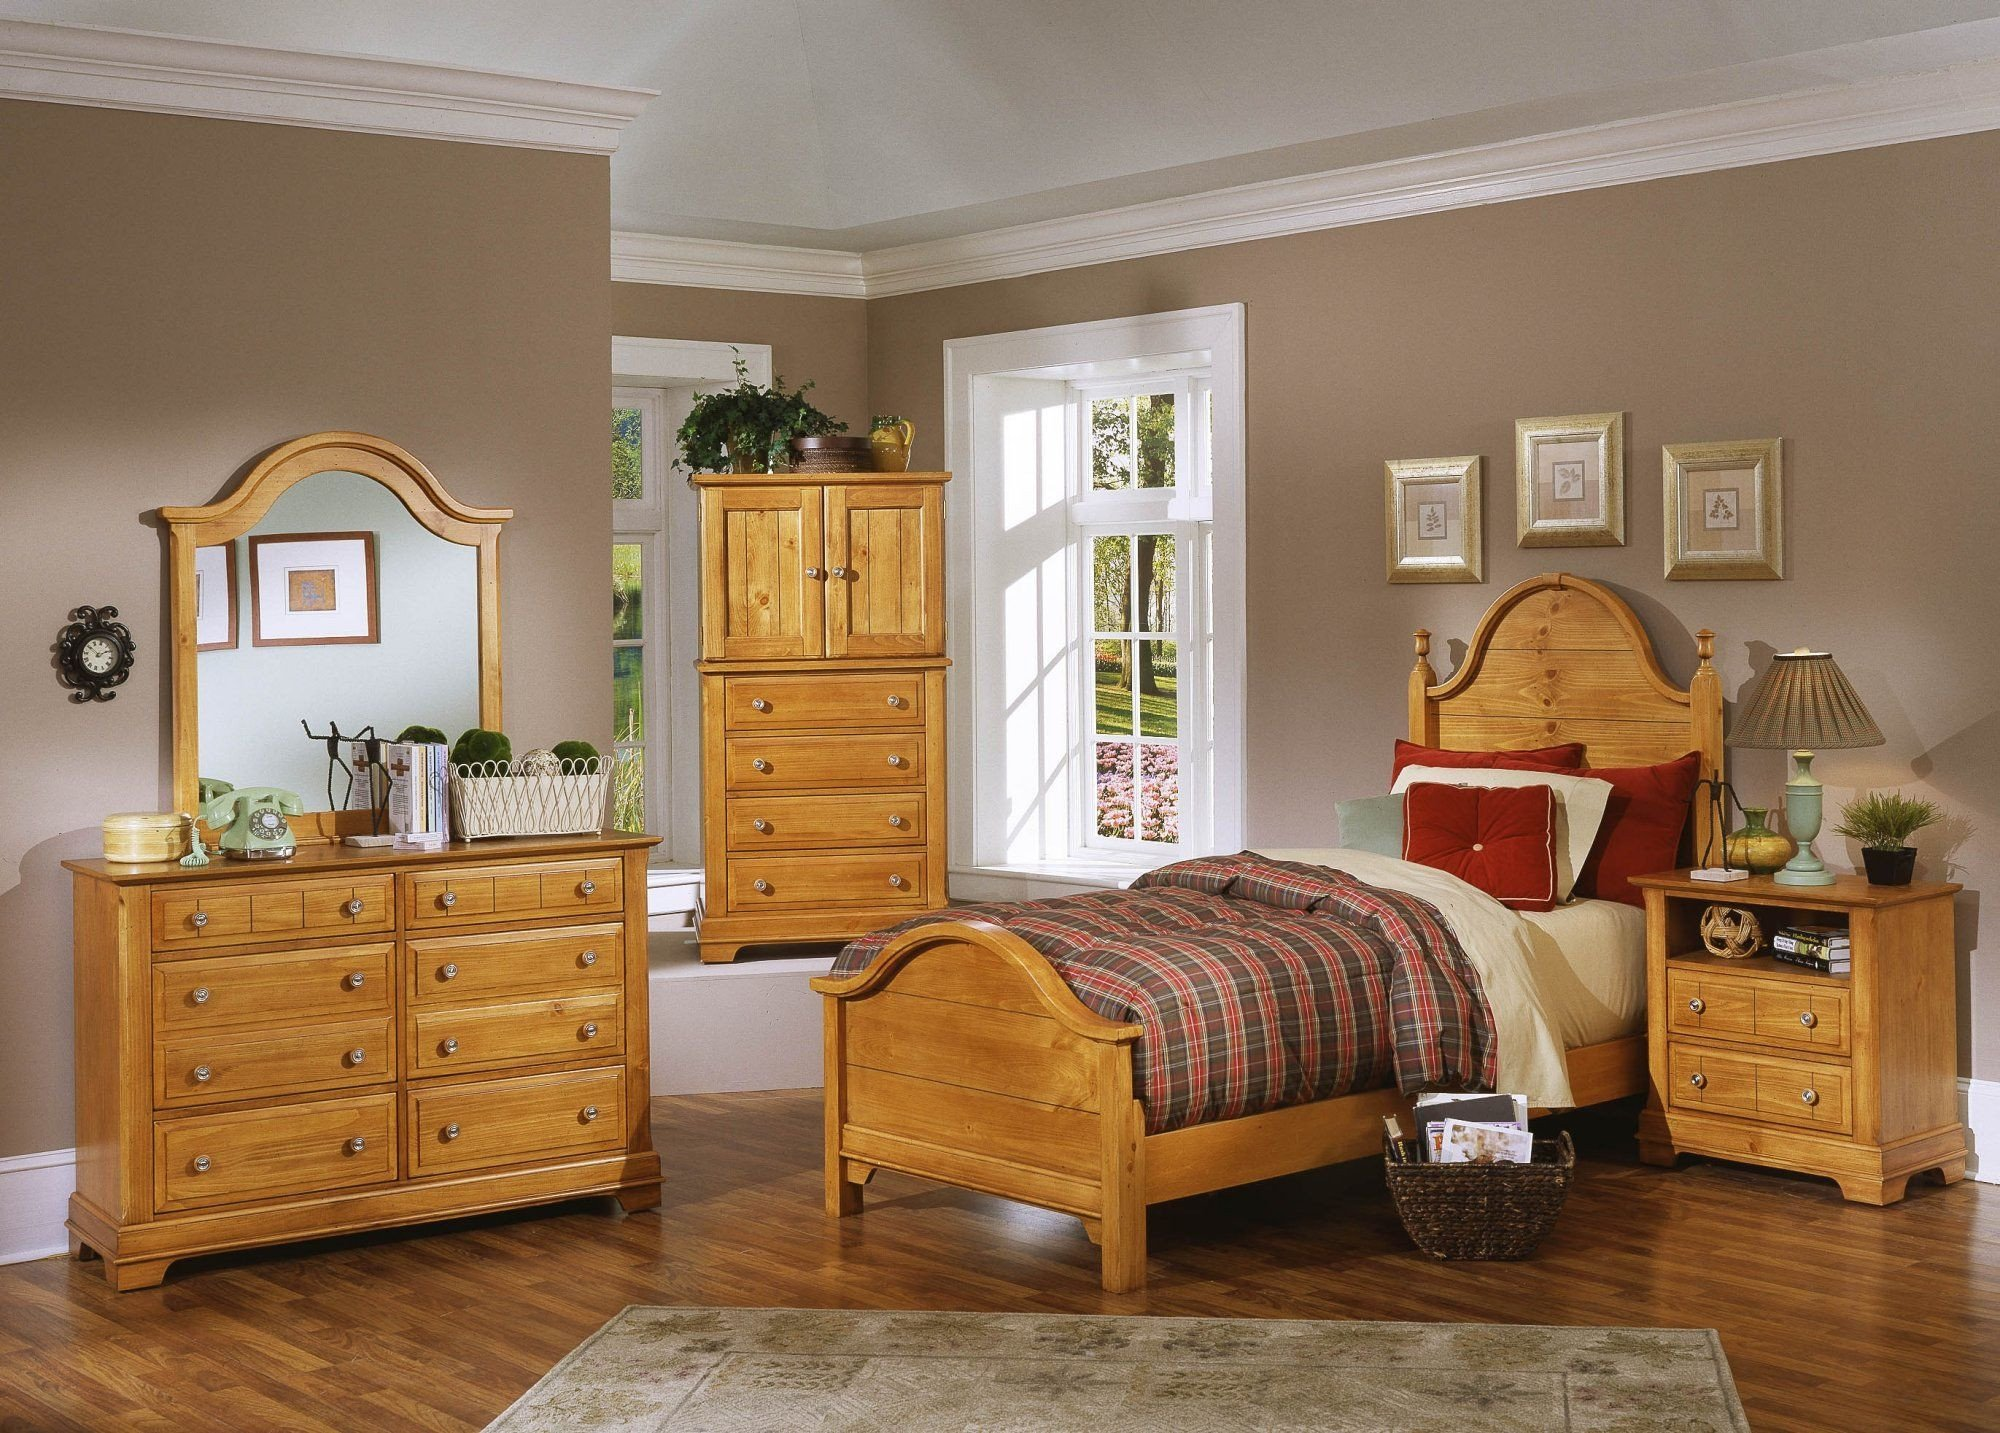 Bedroom Furniture for Cheap Awesome 30 Inspired Picture Of Wooden Bedroom Furniture Wooden